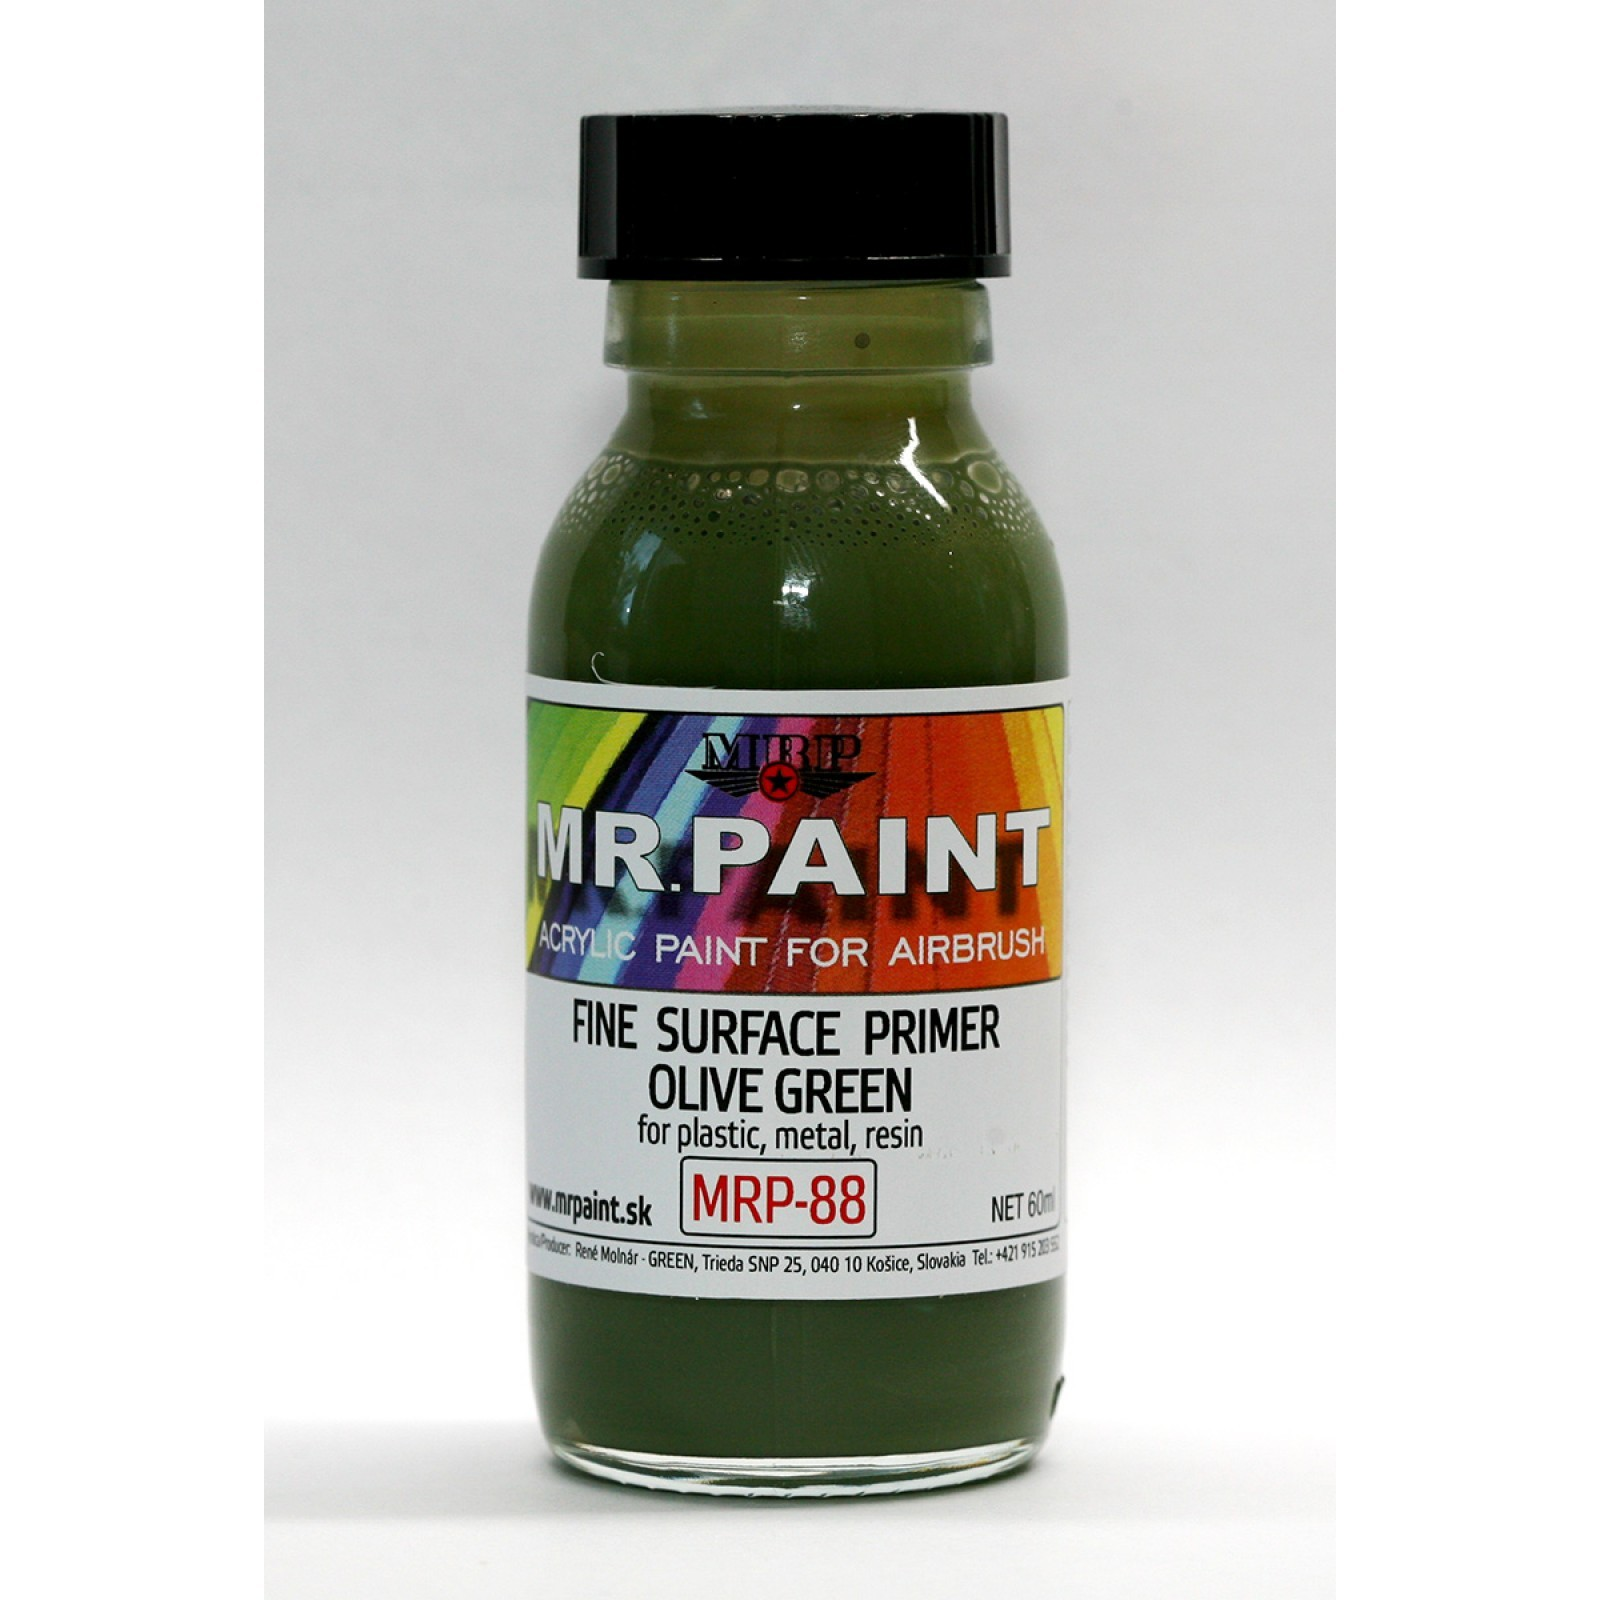 Fine surface primer olive green 60 ml BOKA